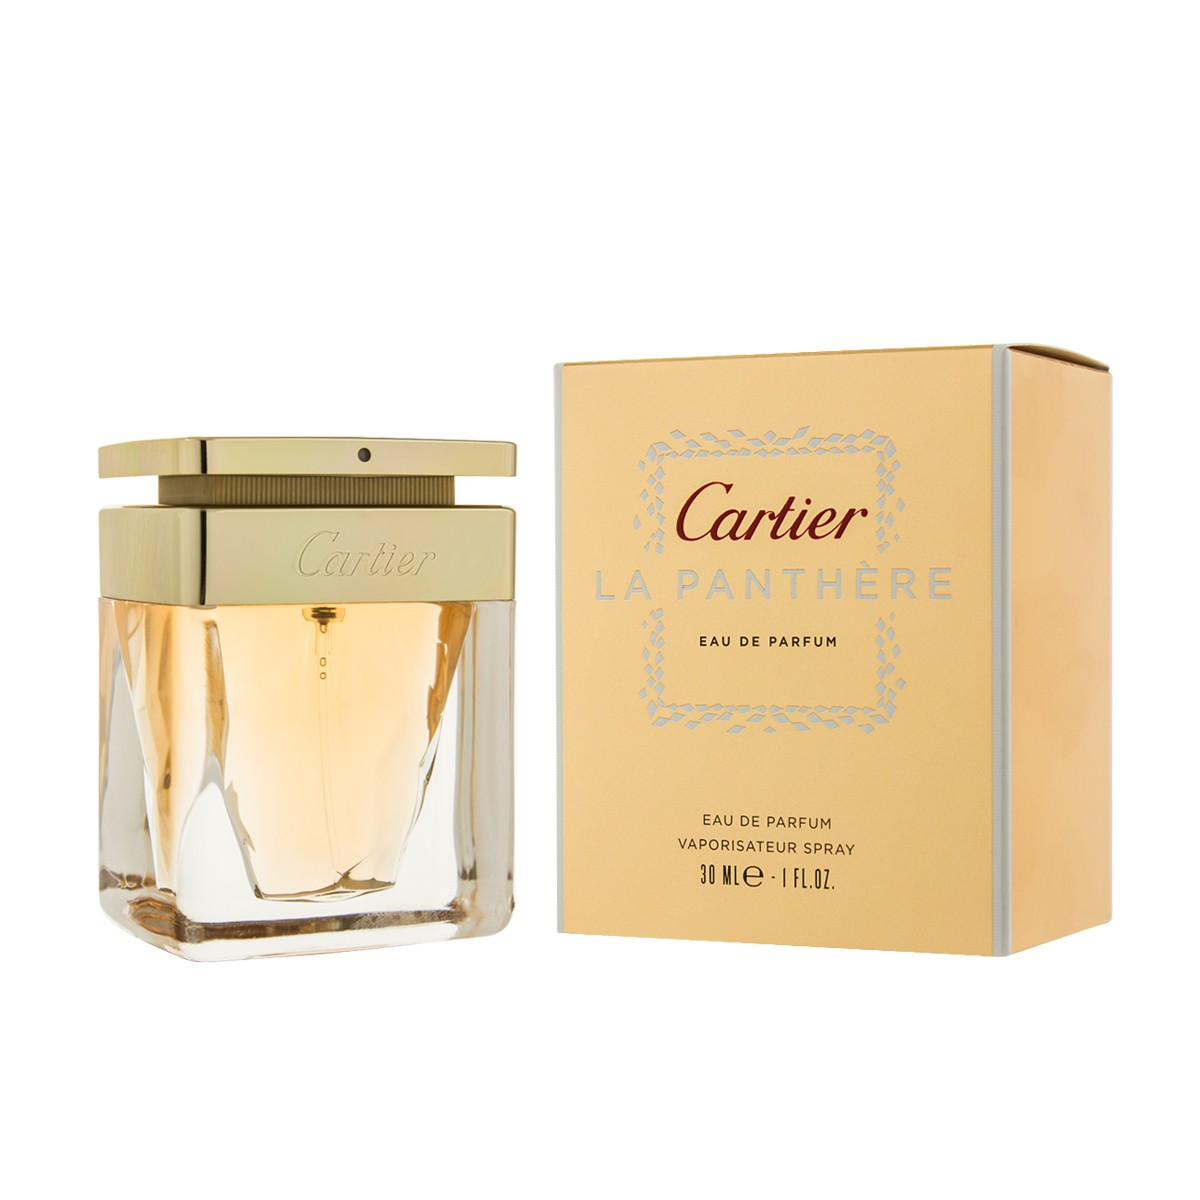 Cartier La Panthere eau de parfum donna spray 30 ml